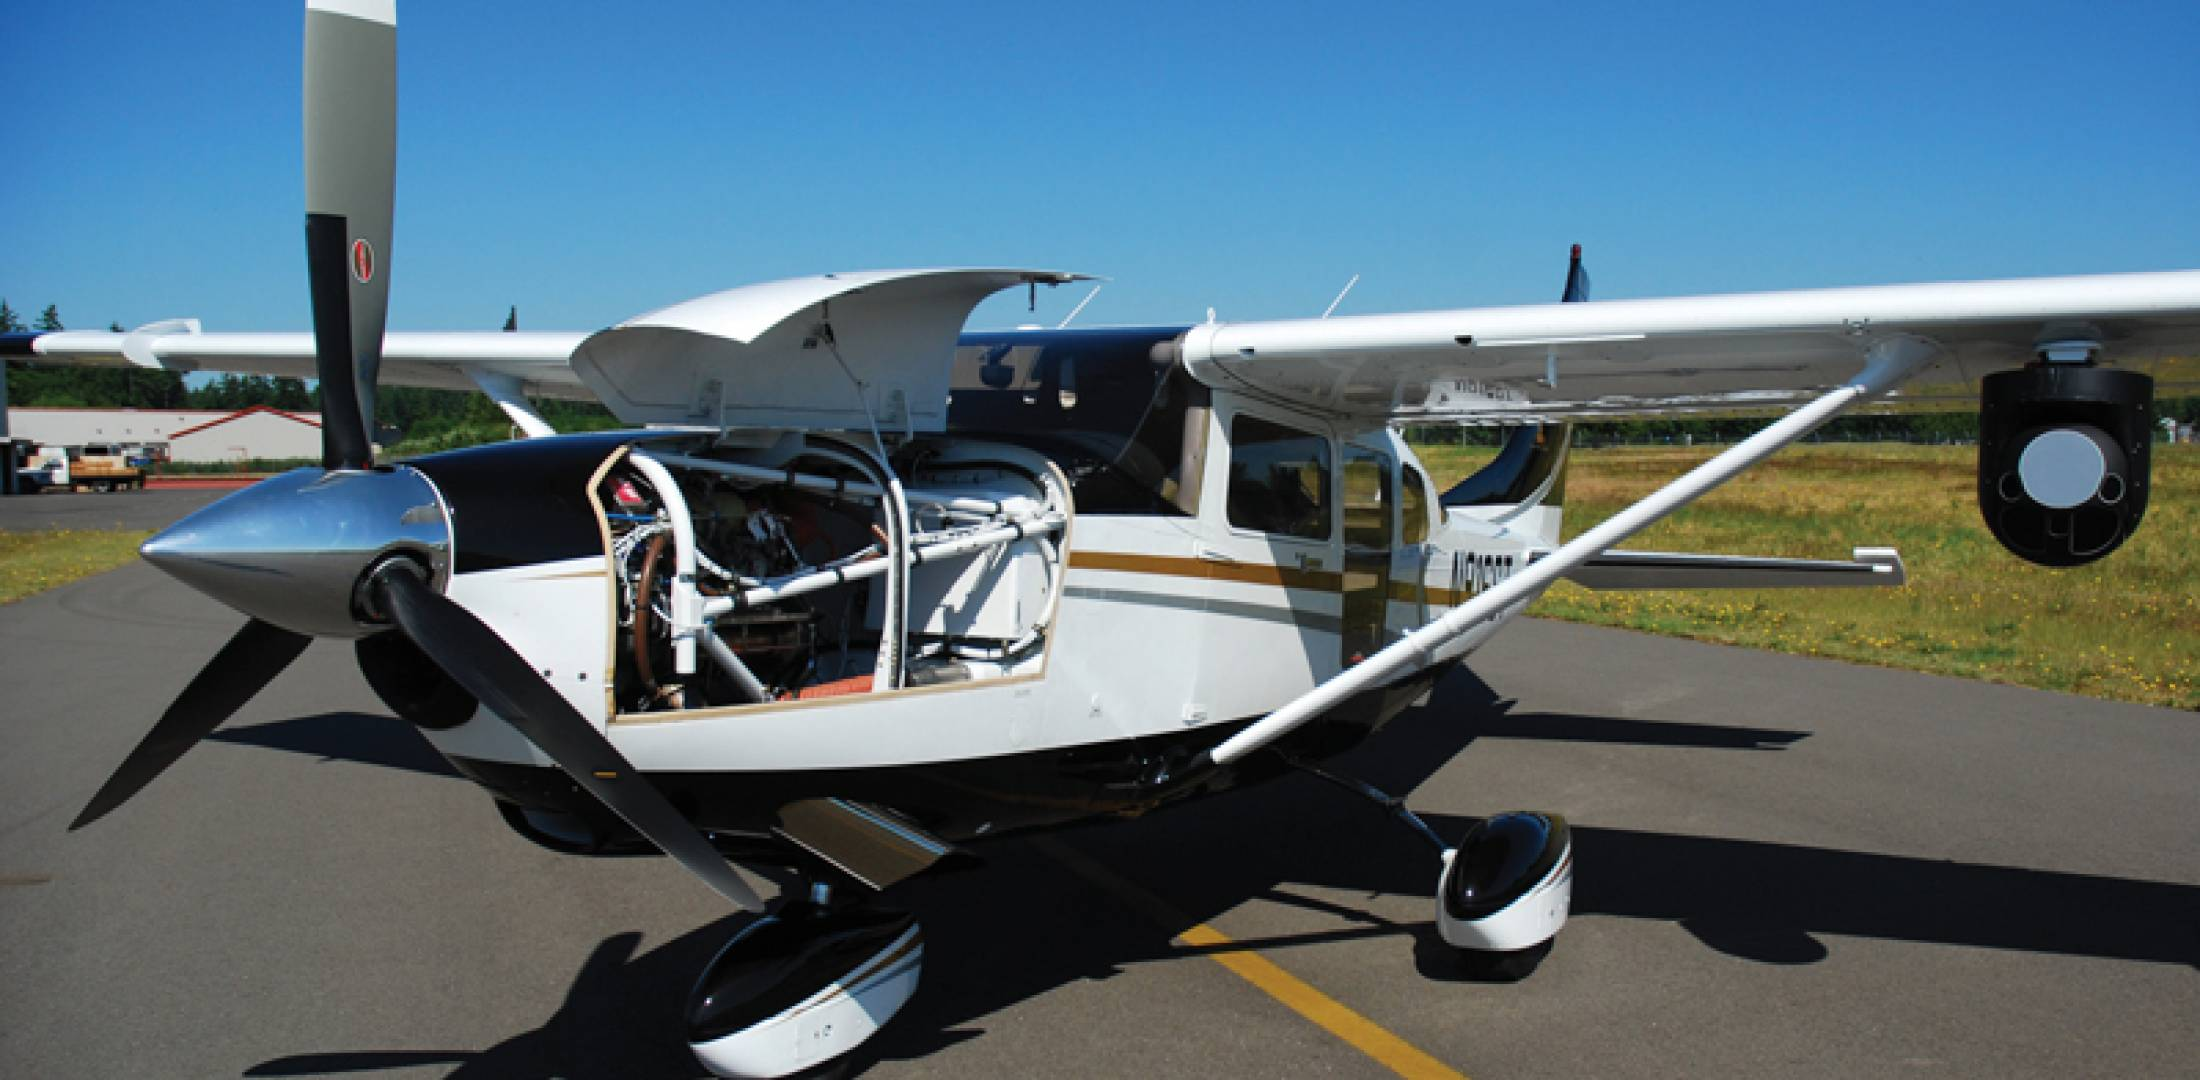 Soloy 206 a Quieter, Cheaper Helicopter Alternative